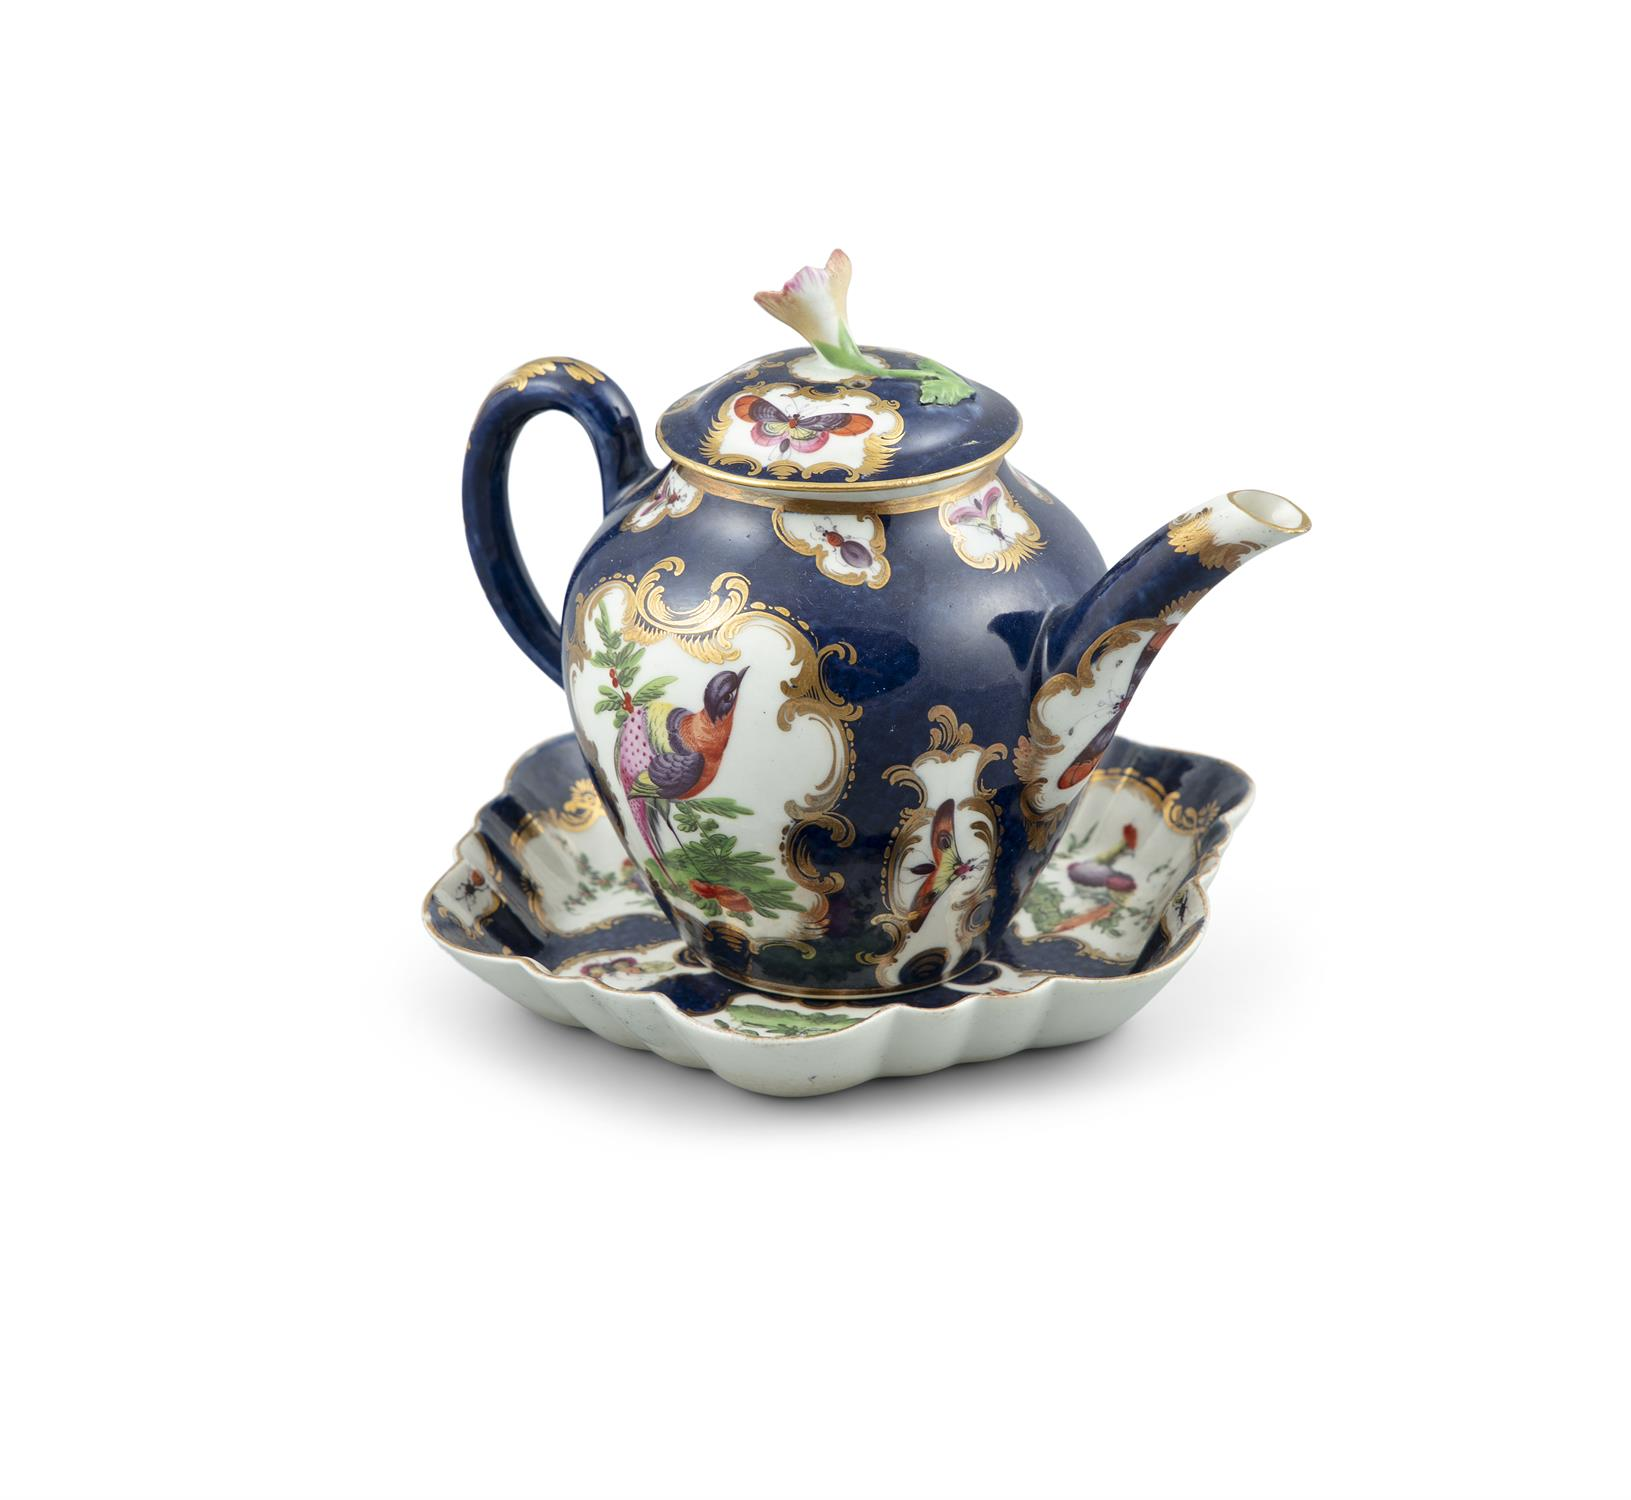 A WORCESTER PORCELAIN BACHELOR'S TEAPOT AND STAND, the deep blue ground decorated with panels - Image 2 of 3